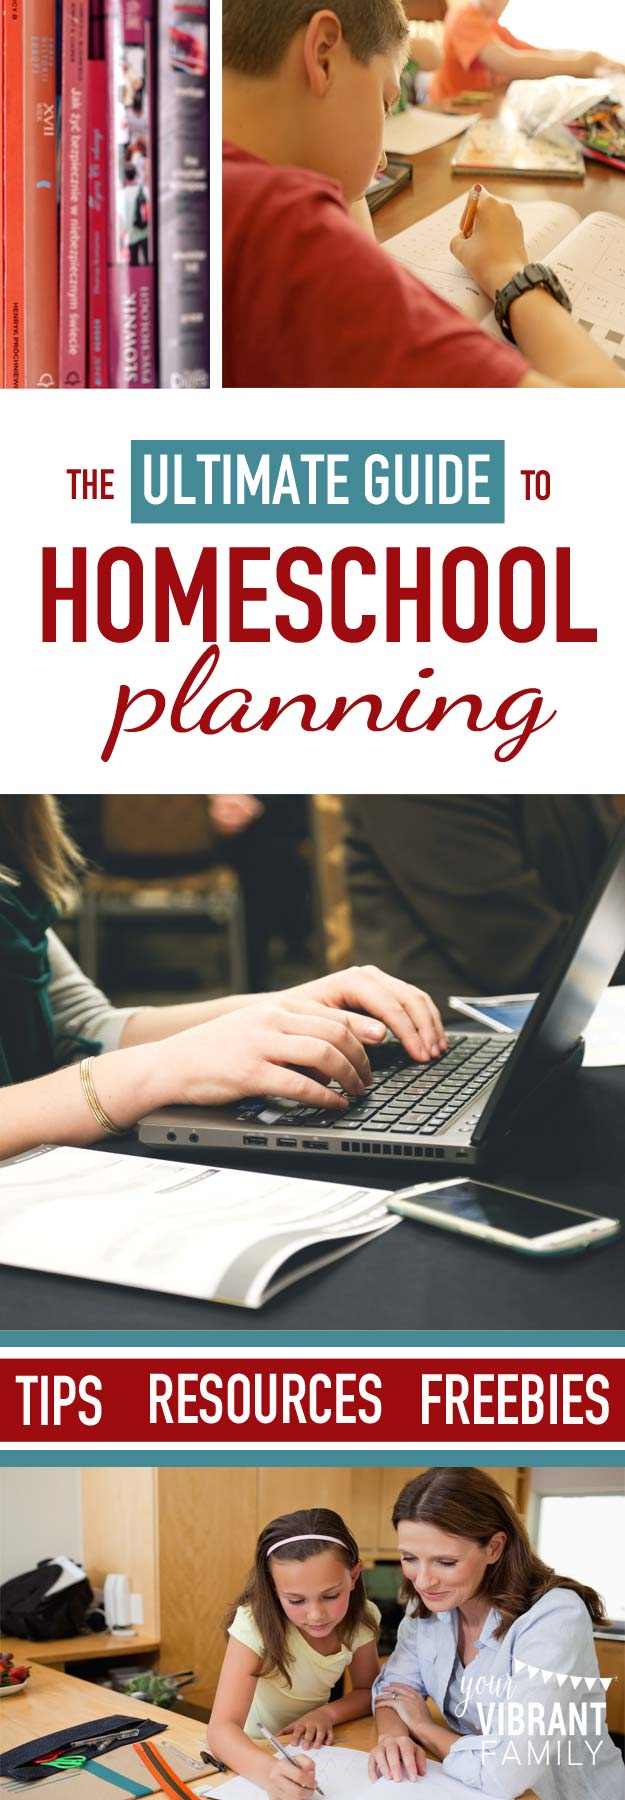 Homeschool planning can be one of the most daunting parts of teaching our kids. Discover how can an online homeschool planner like Homeschool Planet can help create a successful homeschool schedule. Plus free homeschool planners and other great homeschool planning resources!